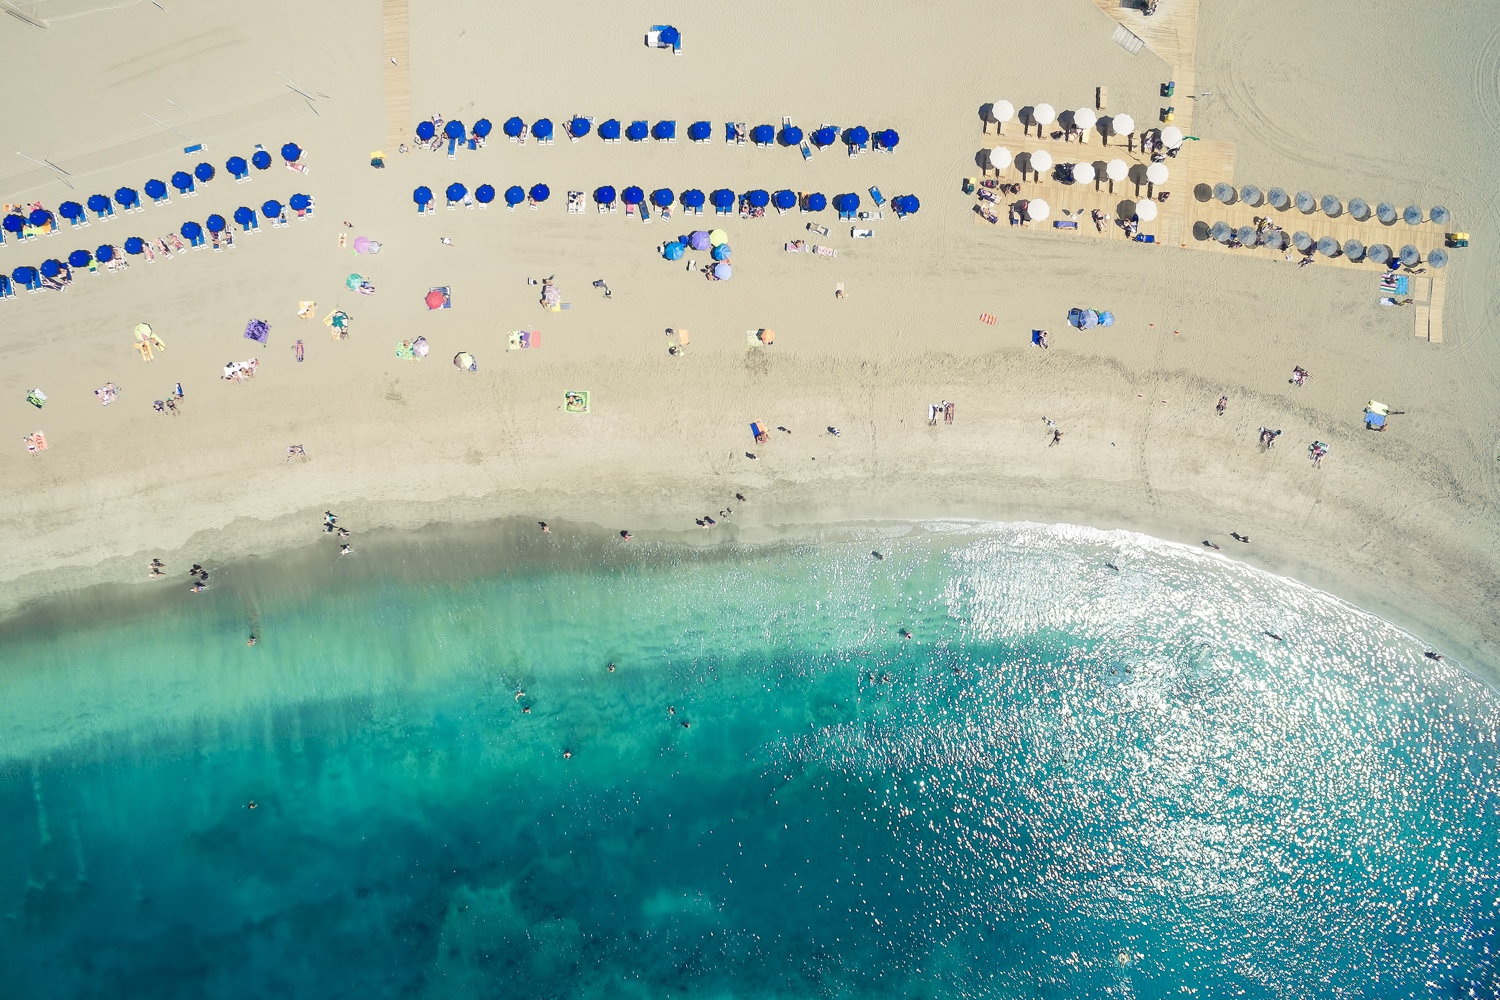 Drone aerial shot of people spending their holidays on beach and ocean in Adeje Playa de las Americas, Tenerife islands, Spain